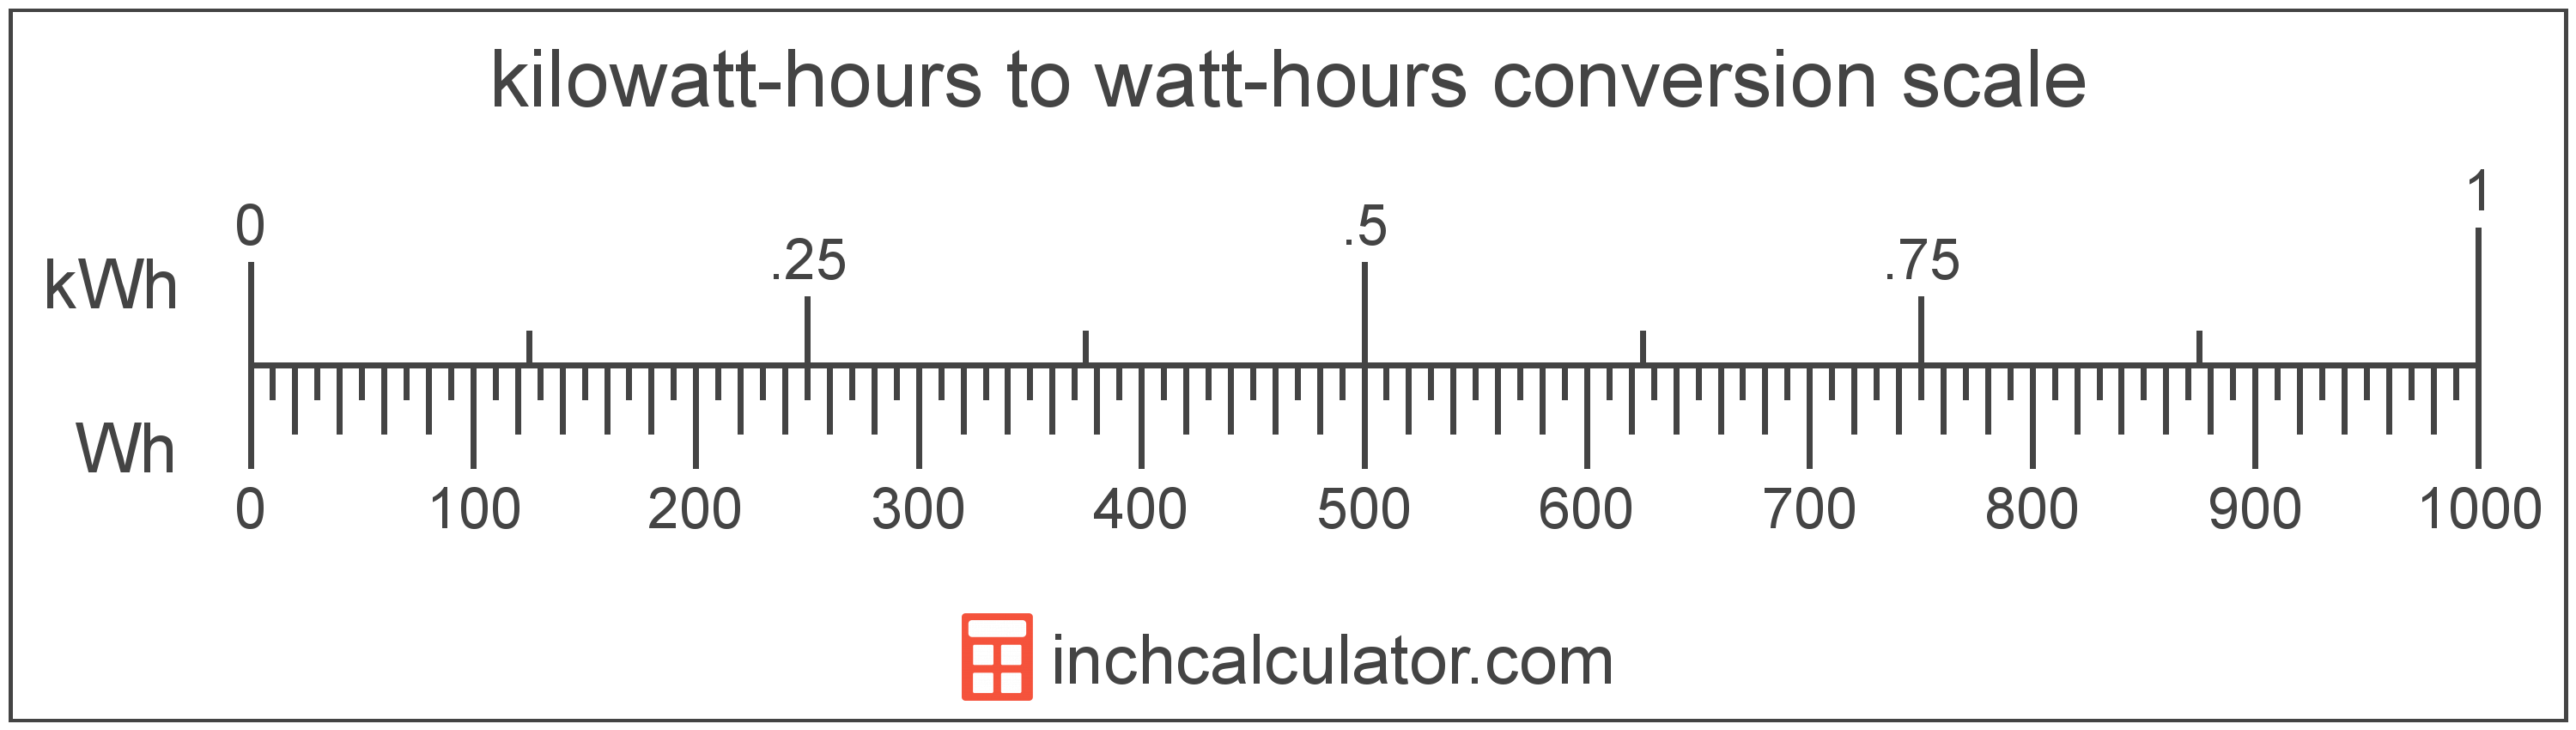 conversion scale showing watt-hours and equivalent kilowatt-hours energy values